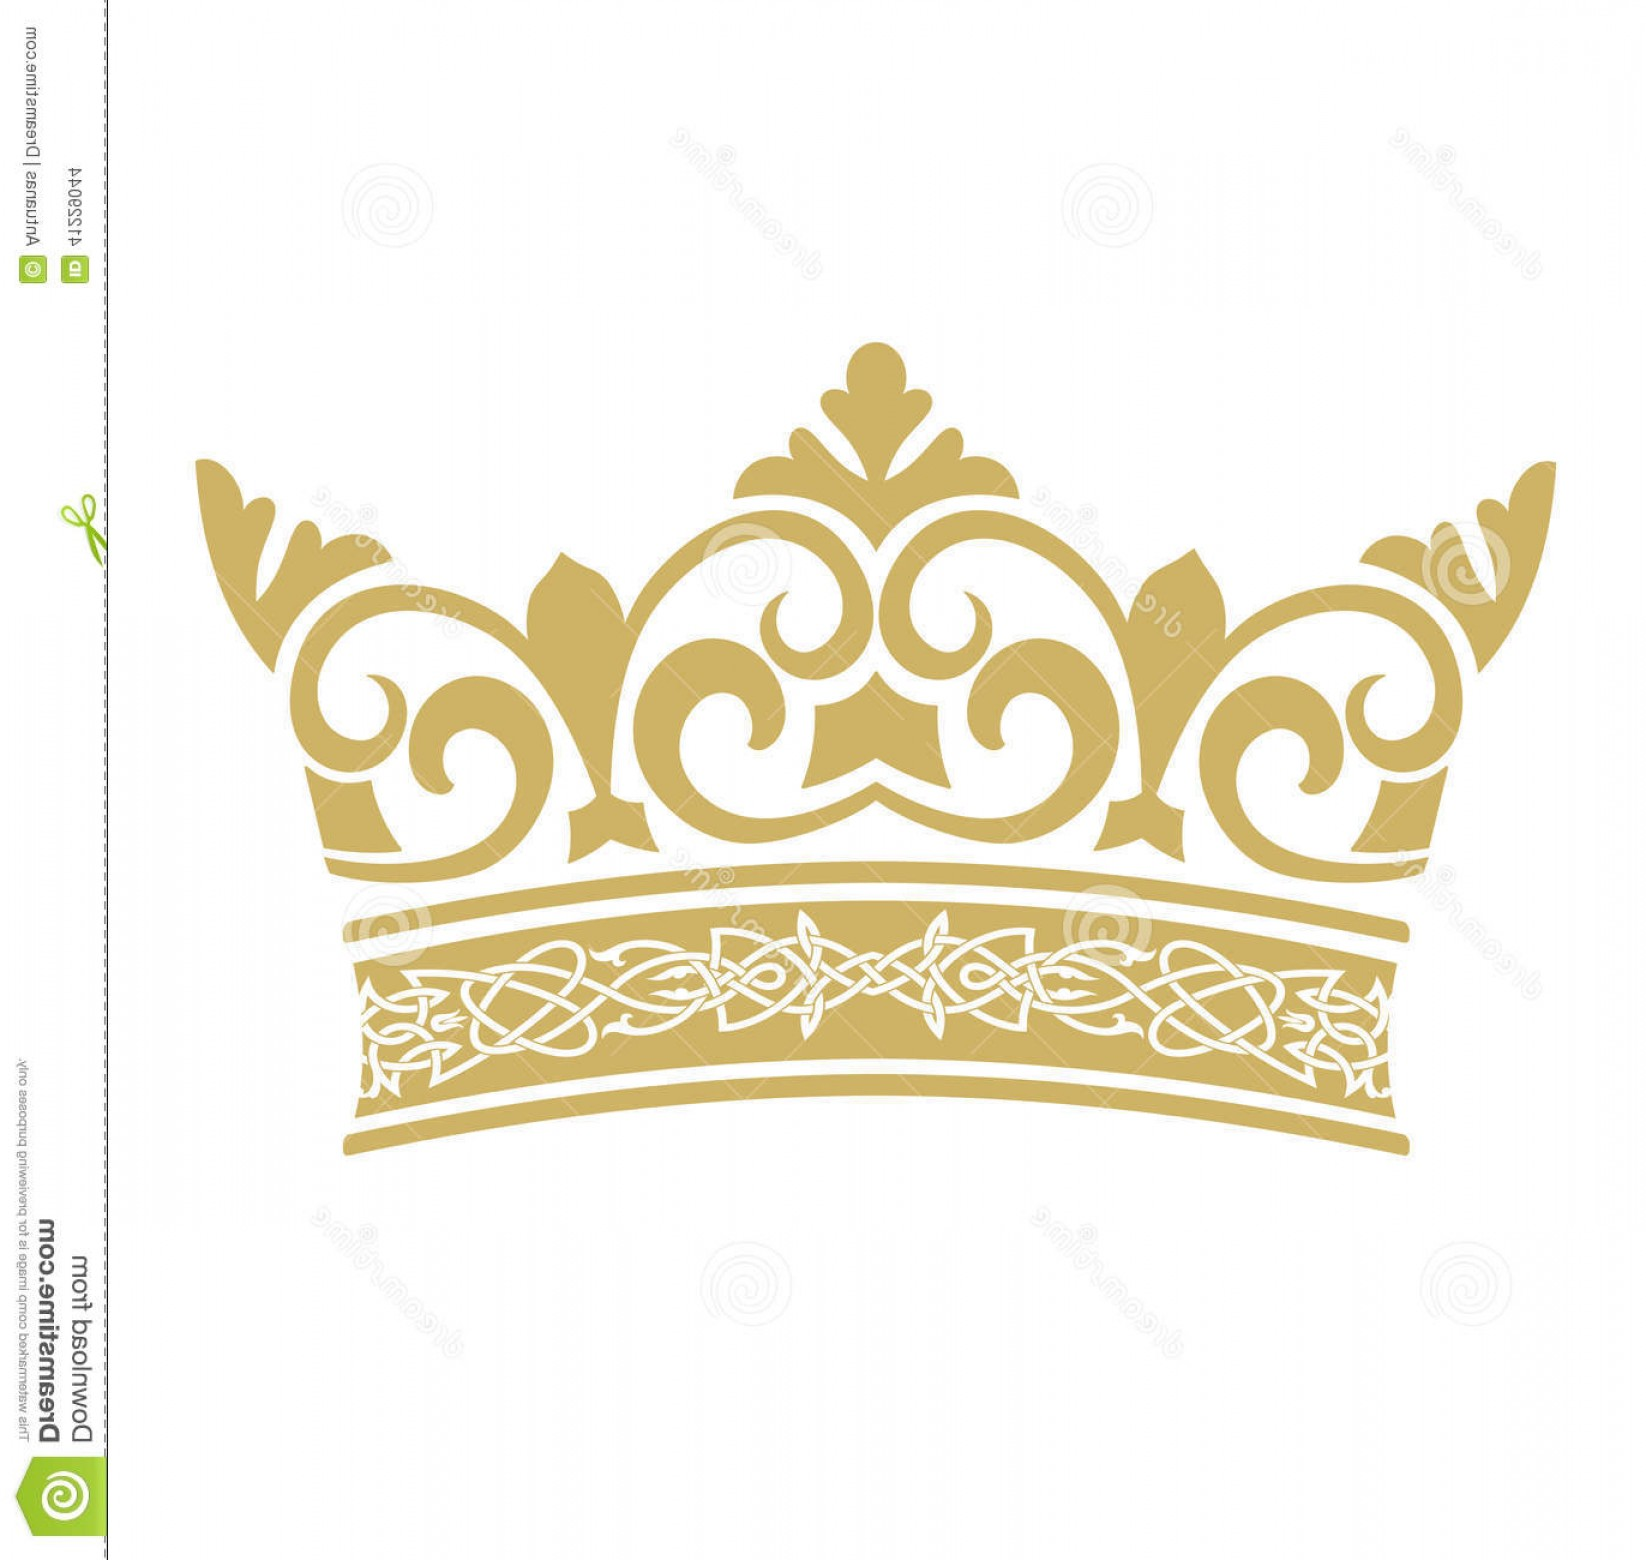 1646x1560 Images Of Gold Princess Crown Template Download Arenawp